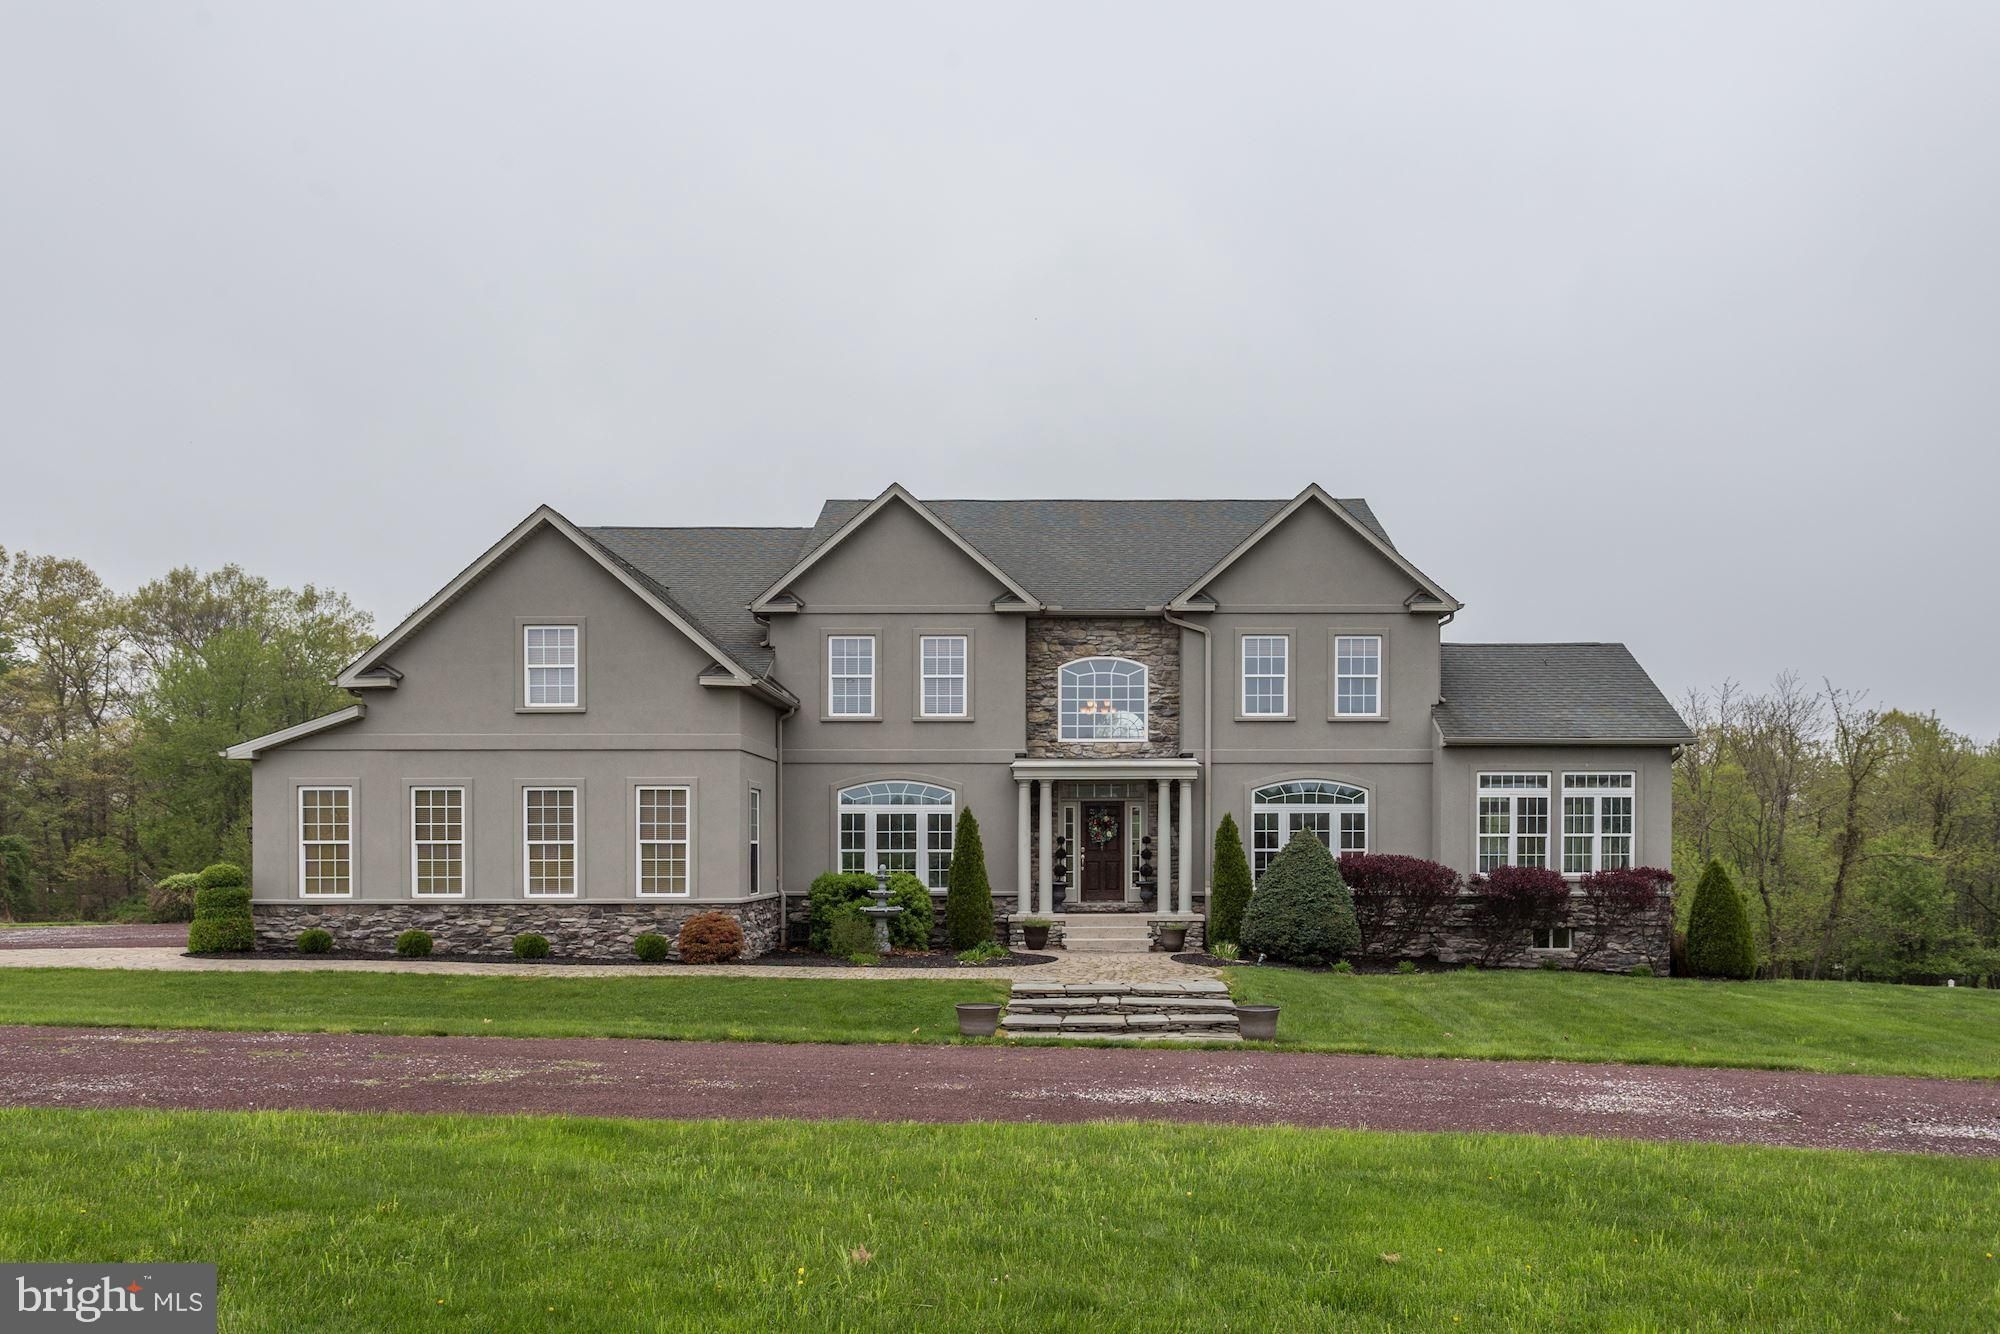 2175 COLD SPRINGS ROAD, ORRTANNA, PA 17352